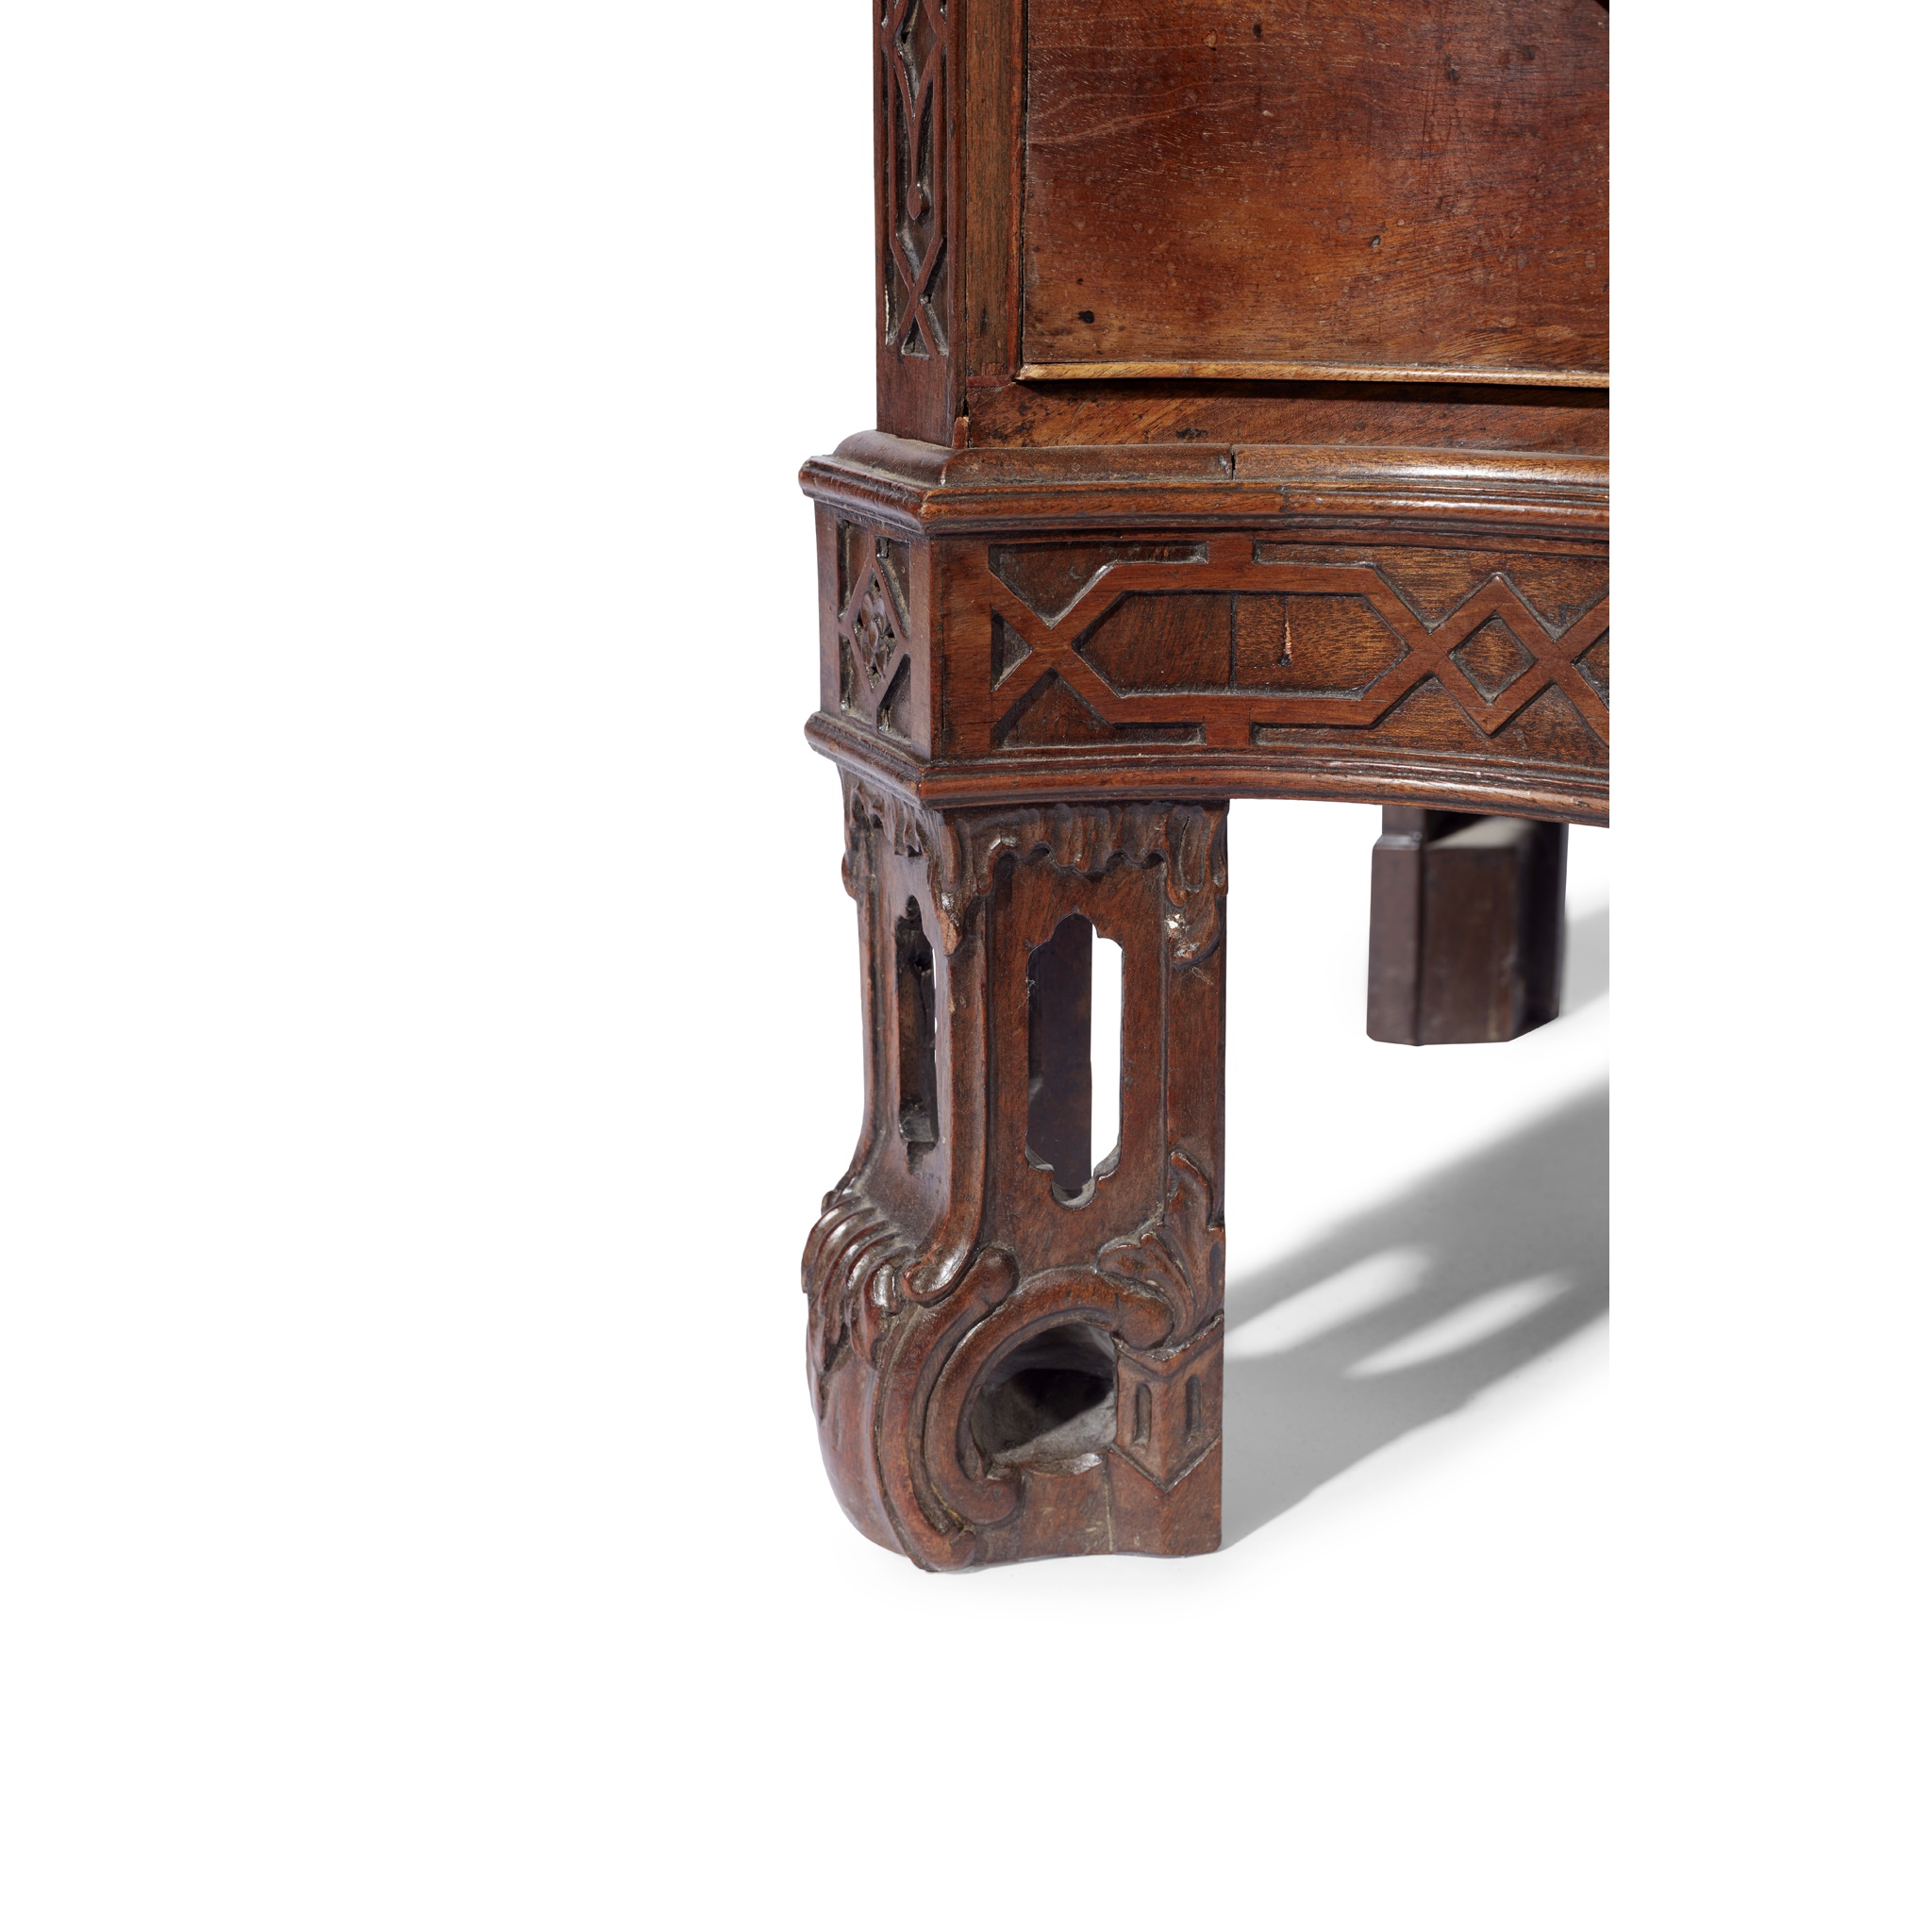 GEORGE III SERPENTINE CHEST OF DRAWERS MID 18TH CENTURY AND LATER - Image 4 of 6